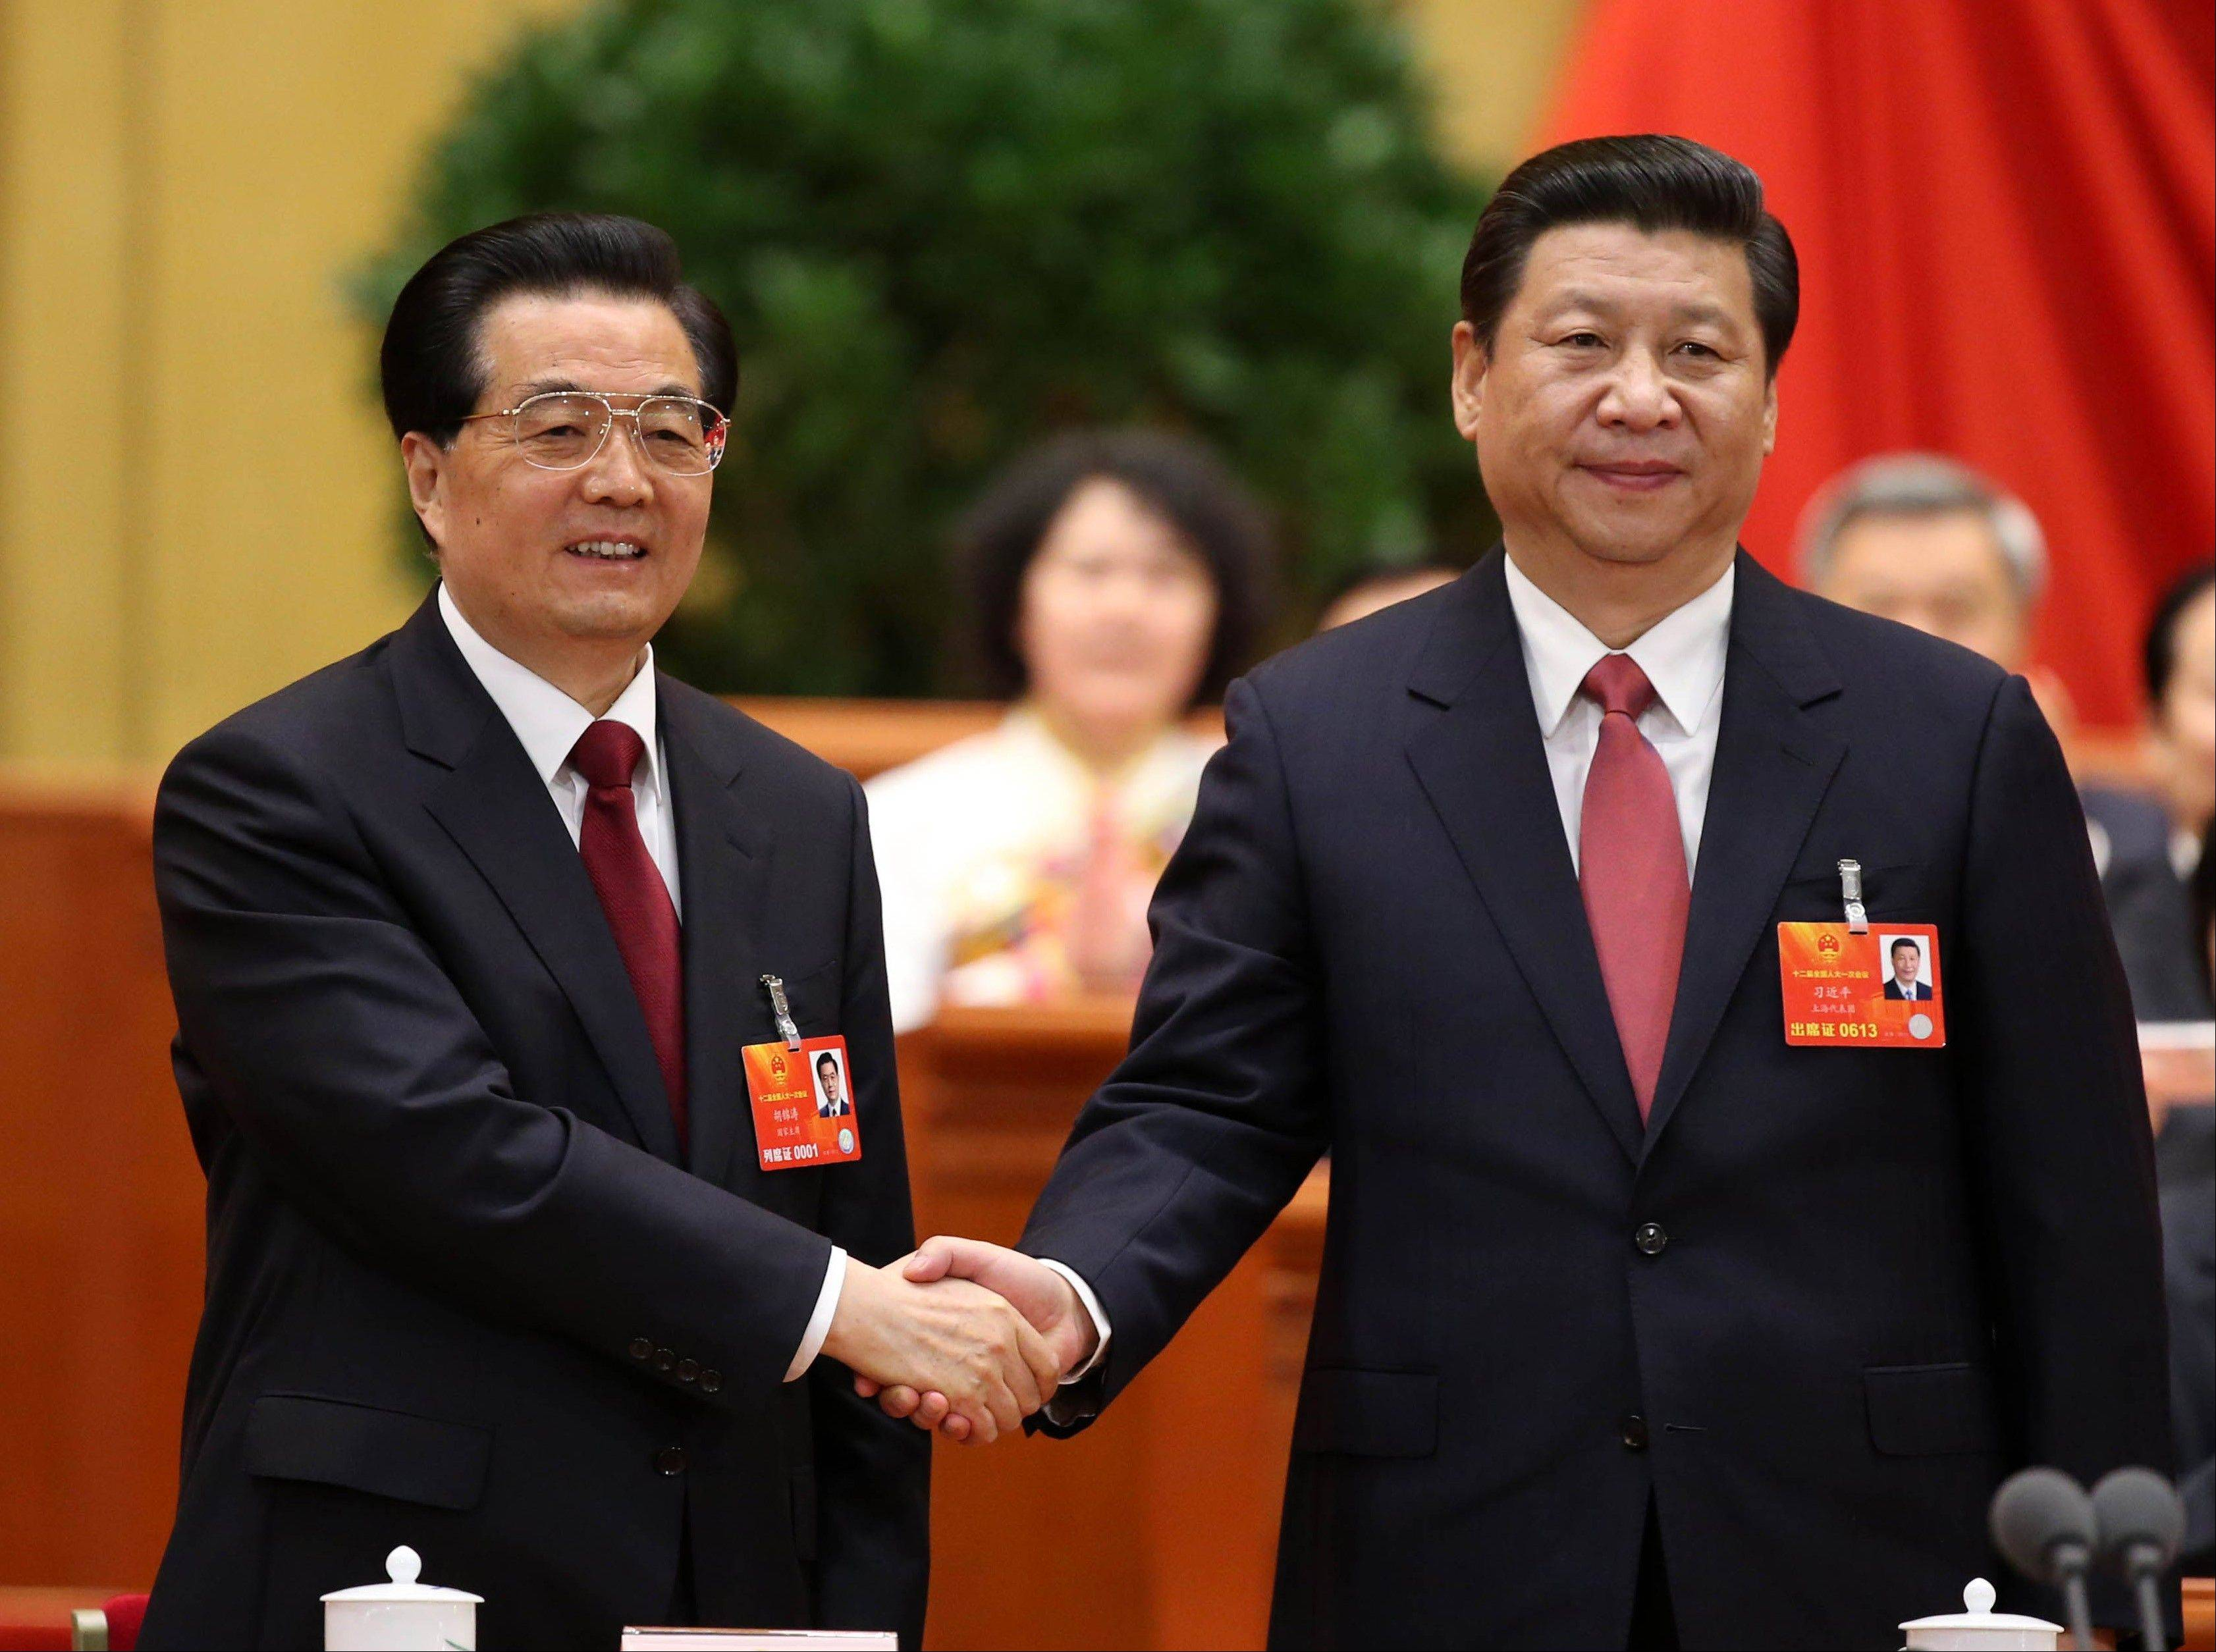 Outgoing Chinese President Hu Jintao, left, poses with his successor, Xi Jinping, after Xi was elected to the presidency at a plenary meeting of the National People's Congress in Beijing Thursday.